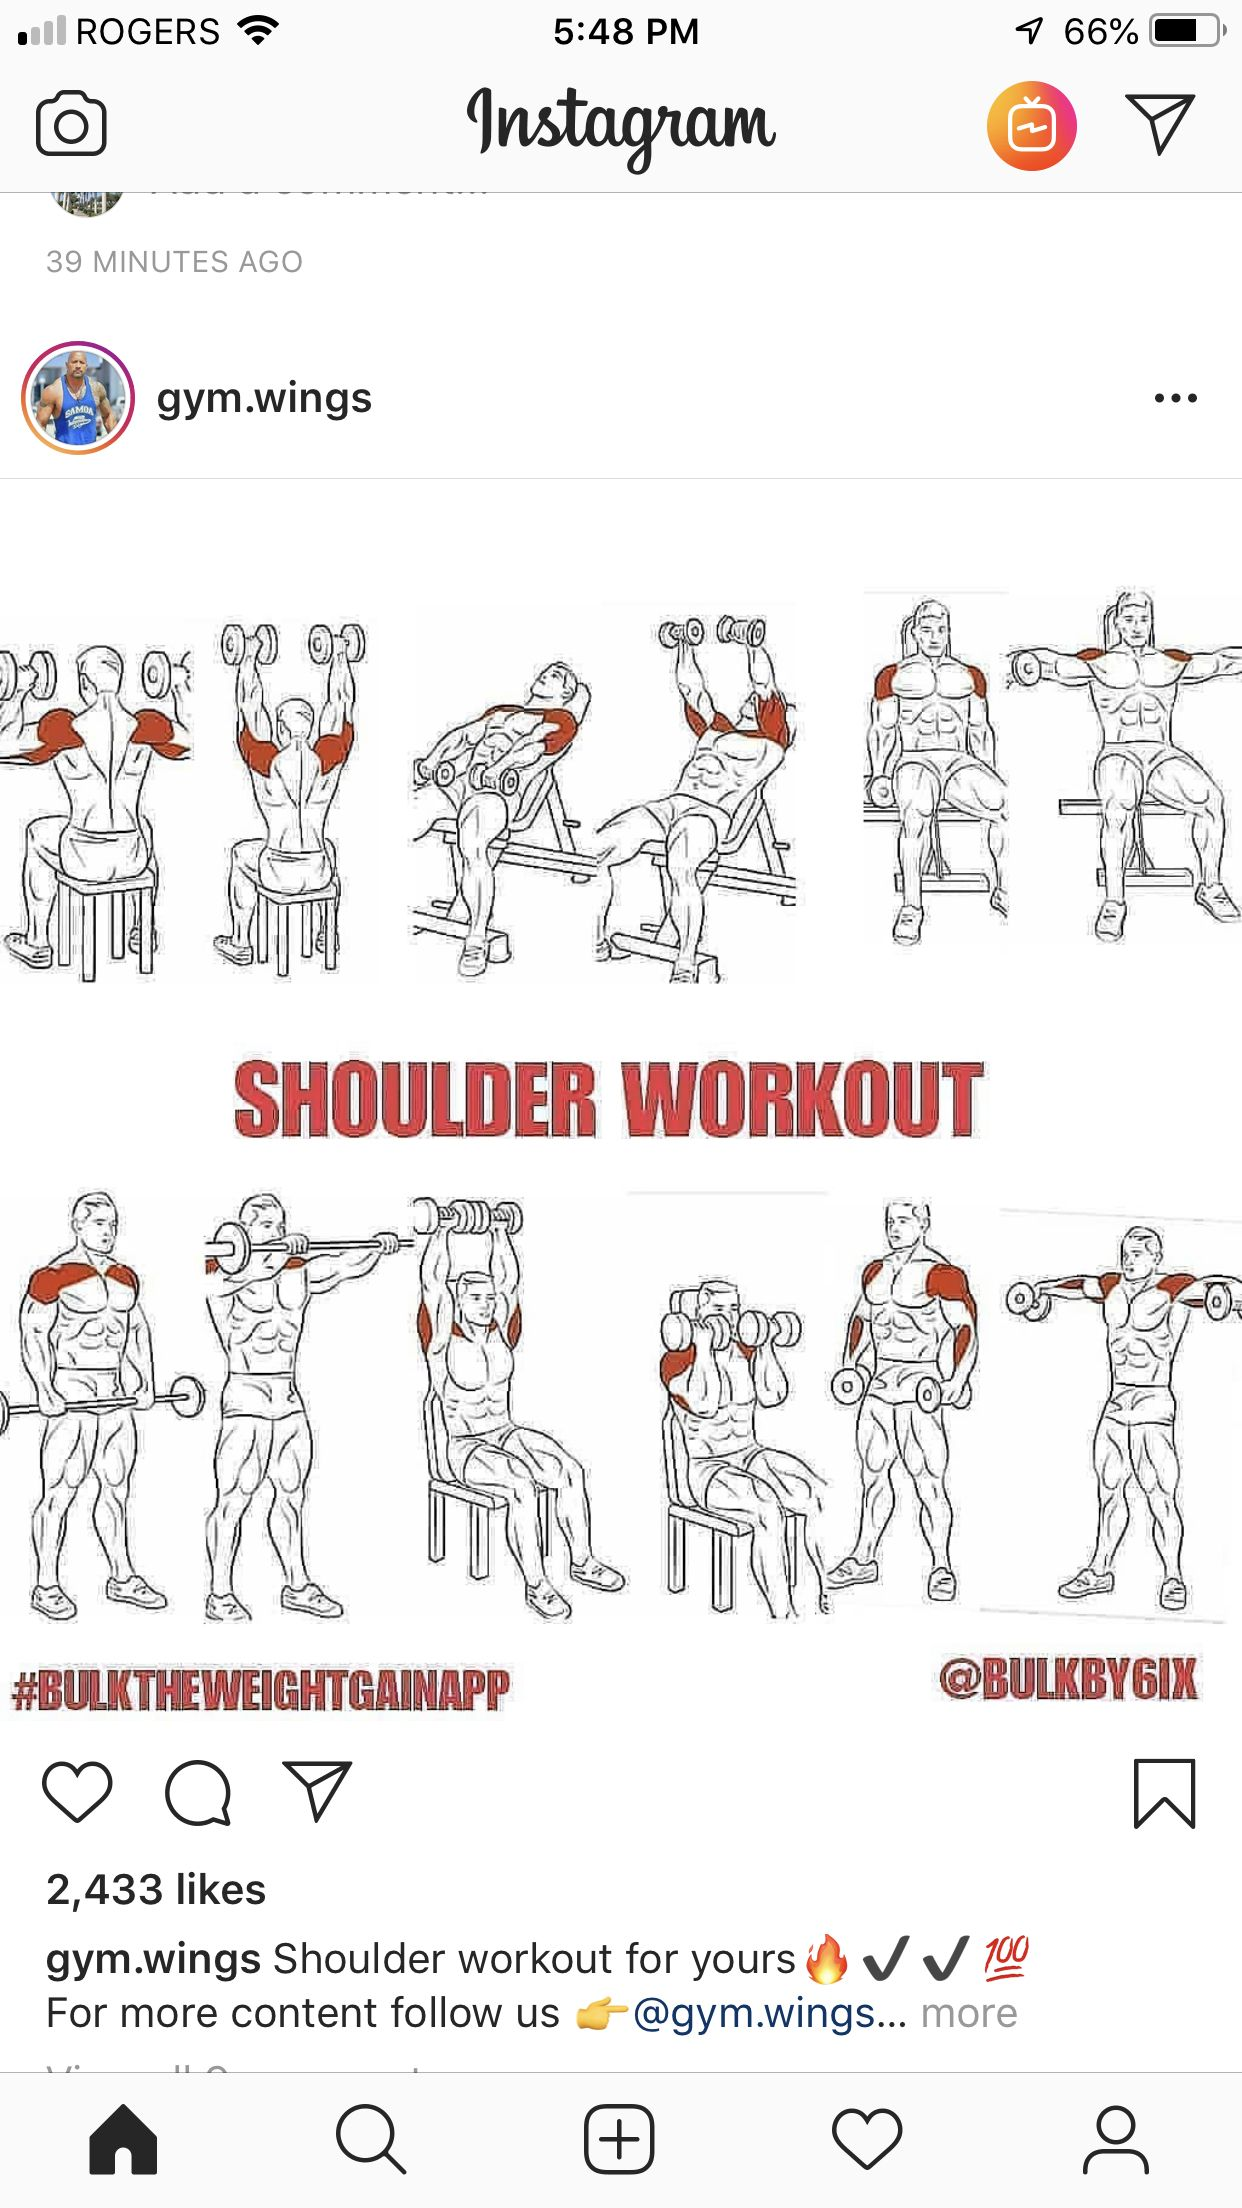 Chest workouts at home fit board gym and also best exercise tips  diet images in rh pinterest